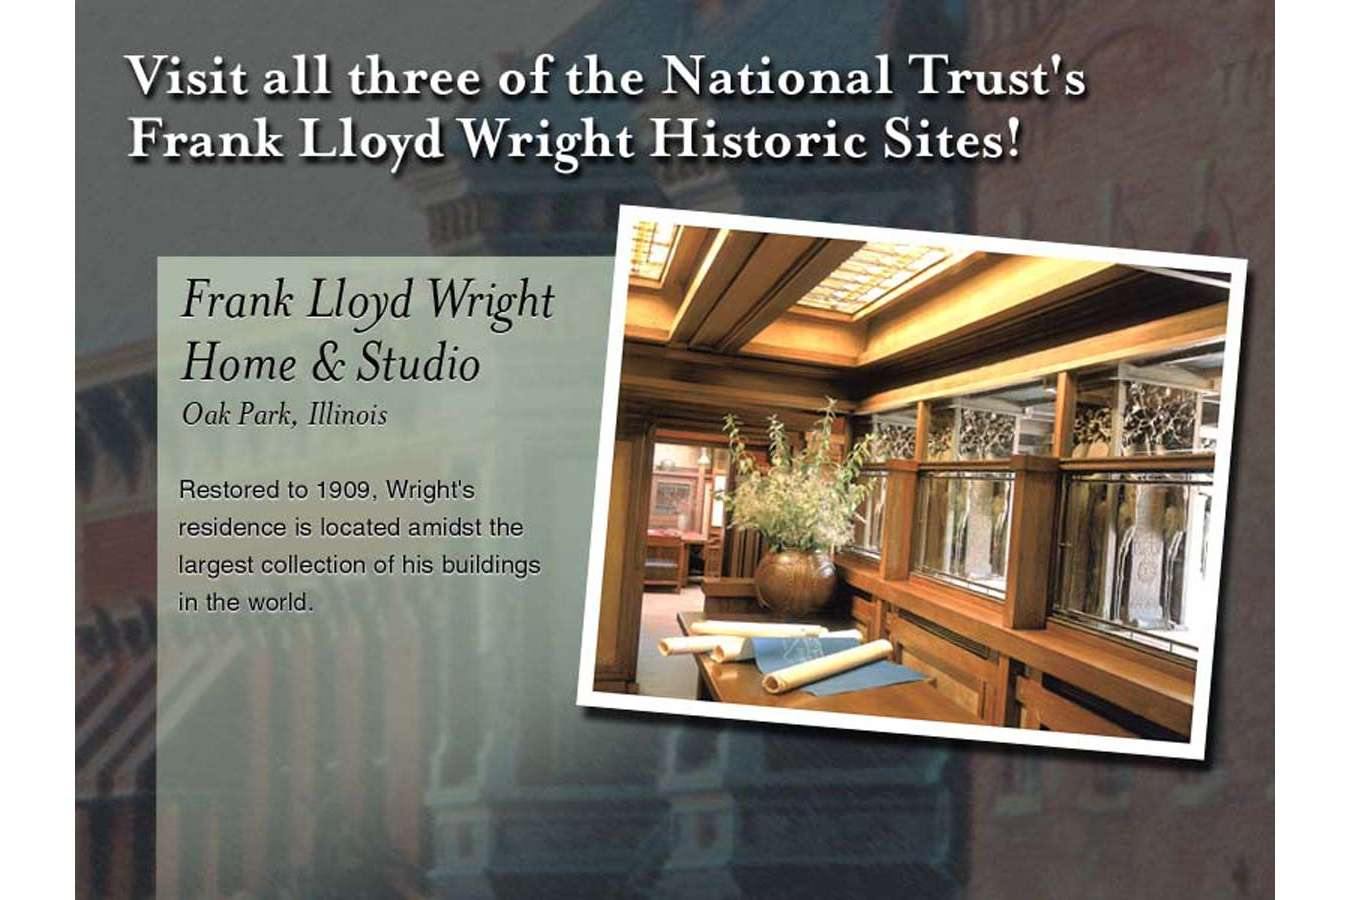 NTHP 3 web3 : For the Frank Lloyd Wright homes, customized articulated wood frame plaque was created